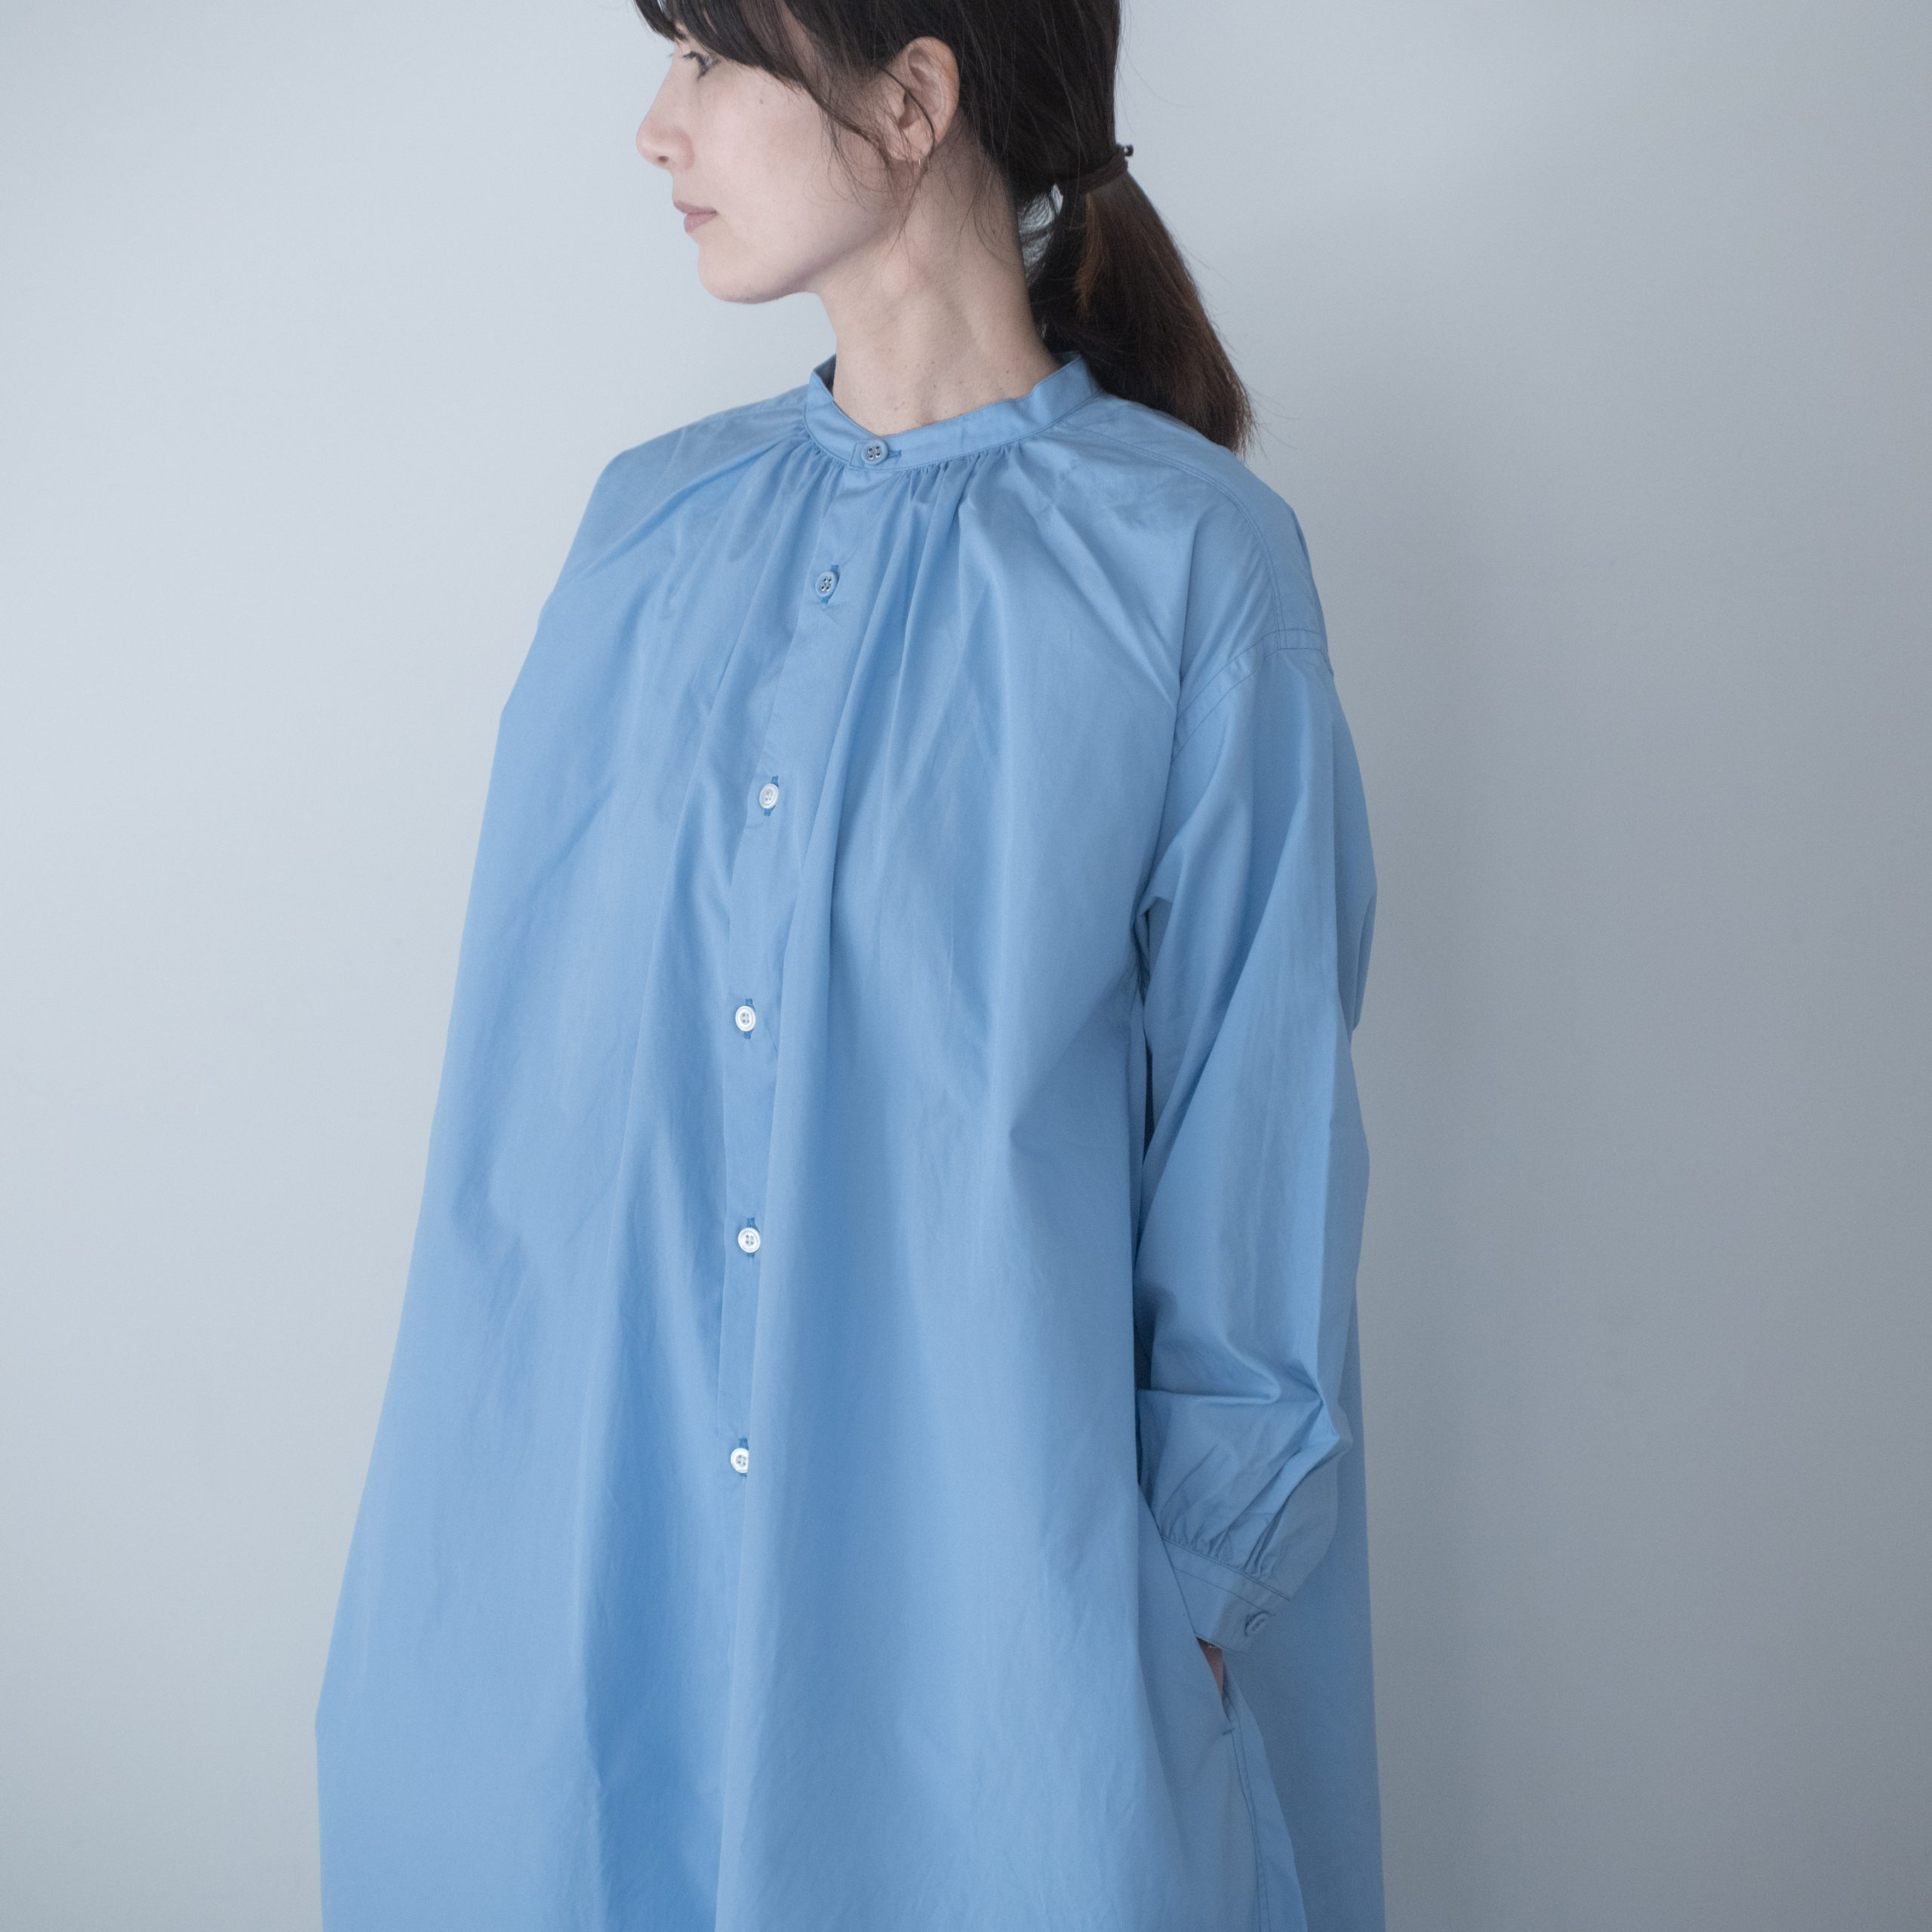 BOL DRESS(ALBINI lavender blue)